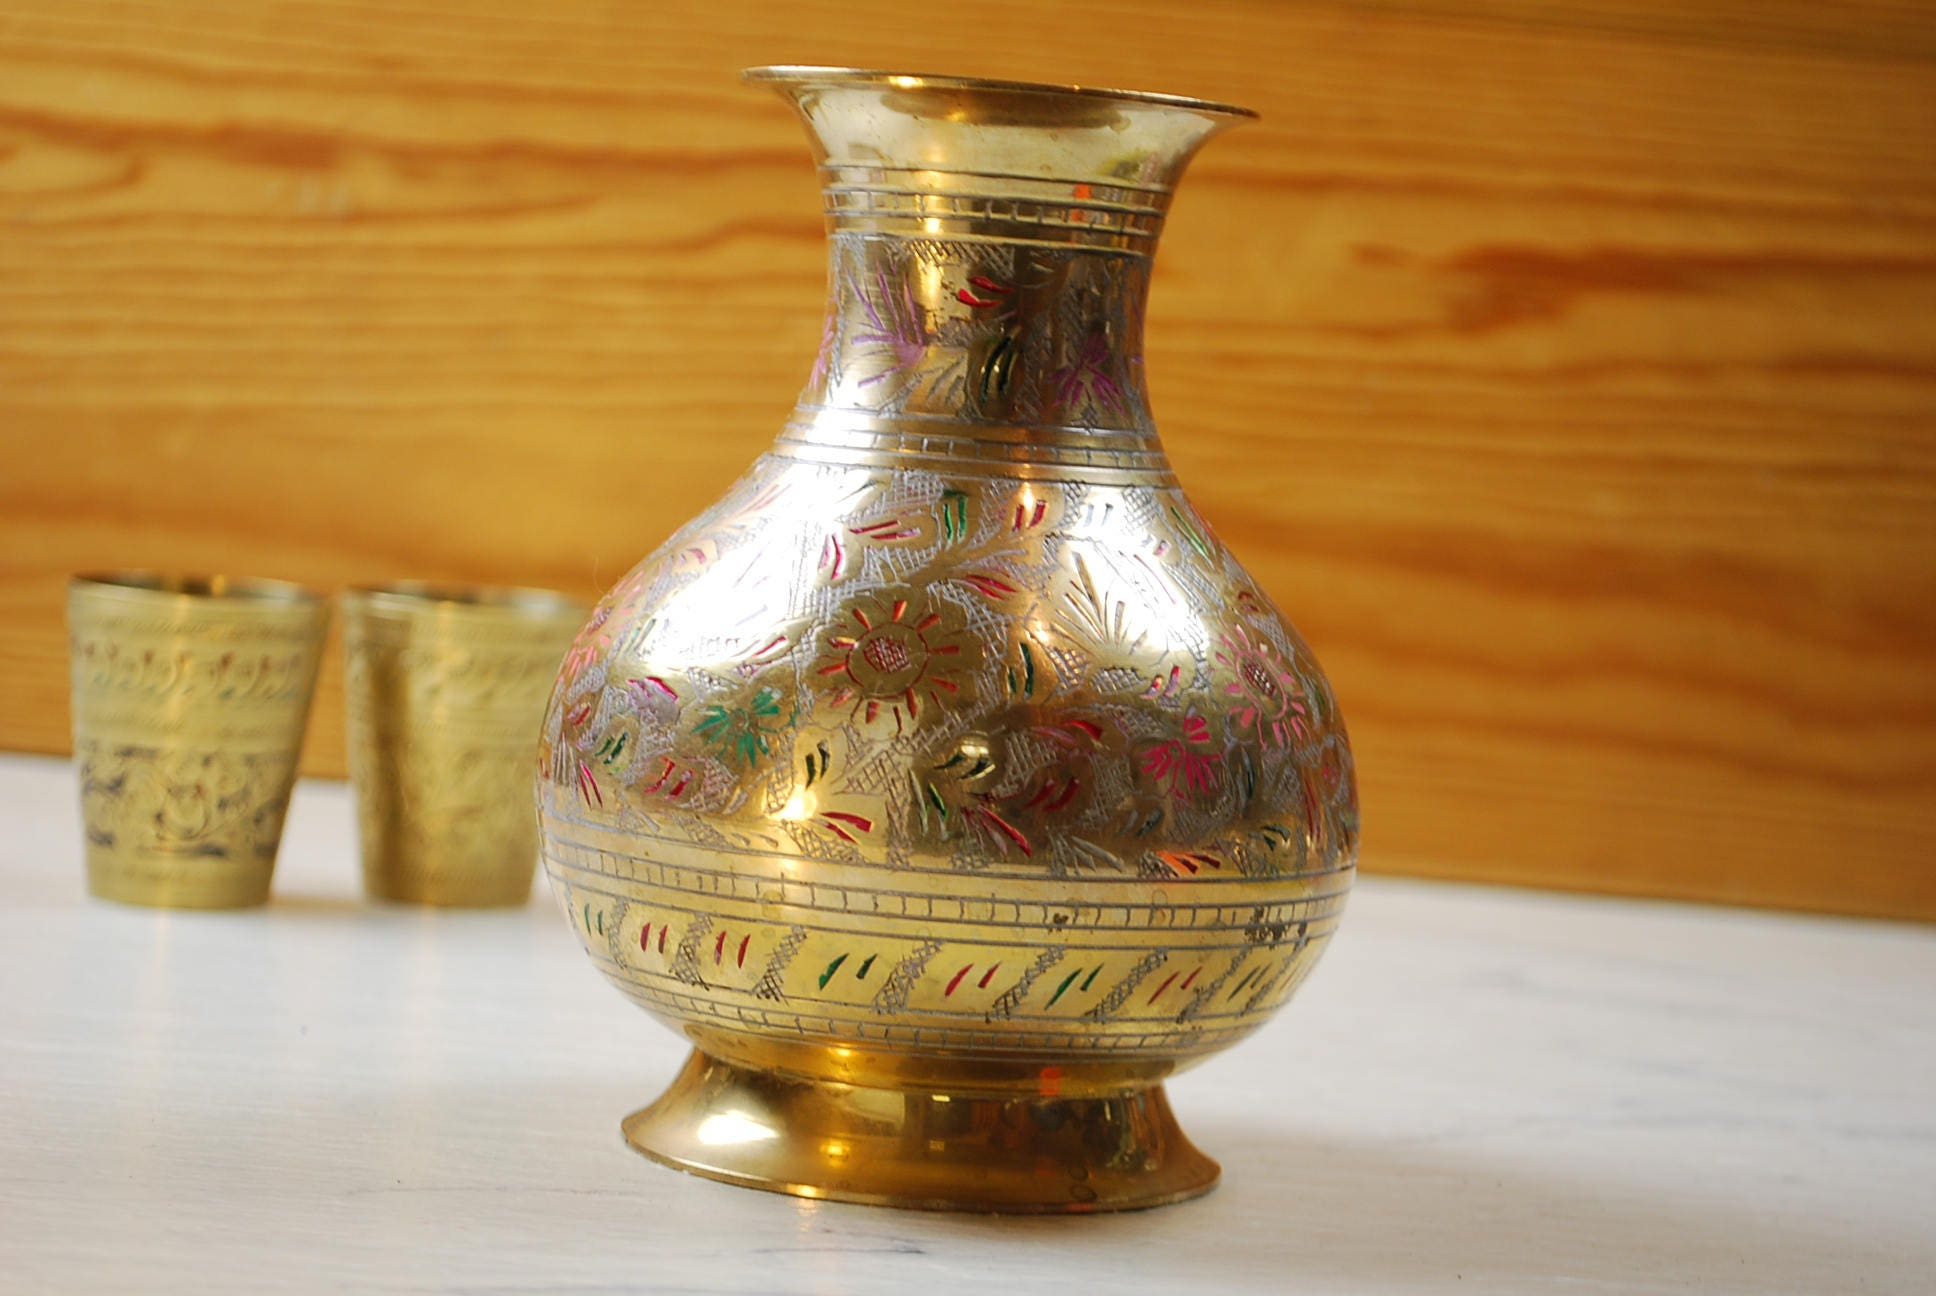 Vintage Brass Vase From India Handmade Engraved Vase Home Decor Vintage Items Table Decor Brass Flower Vases Restaurant Decor